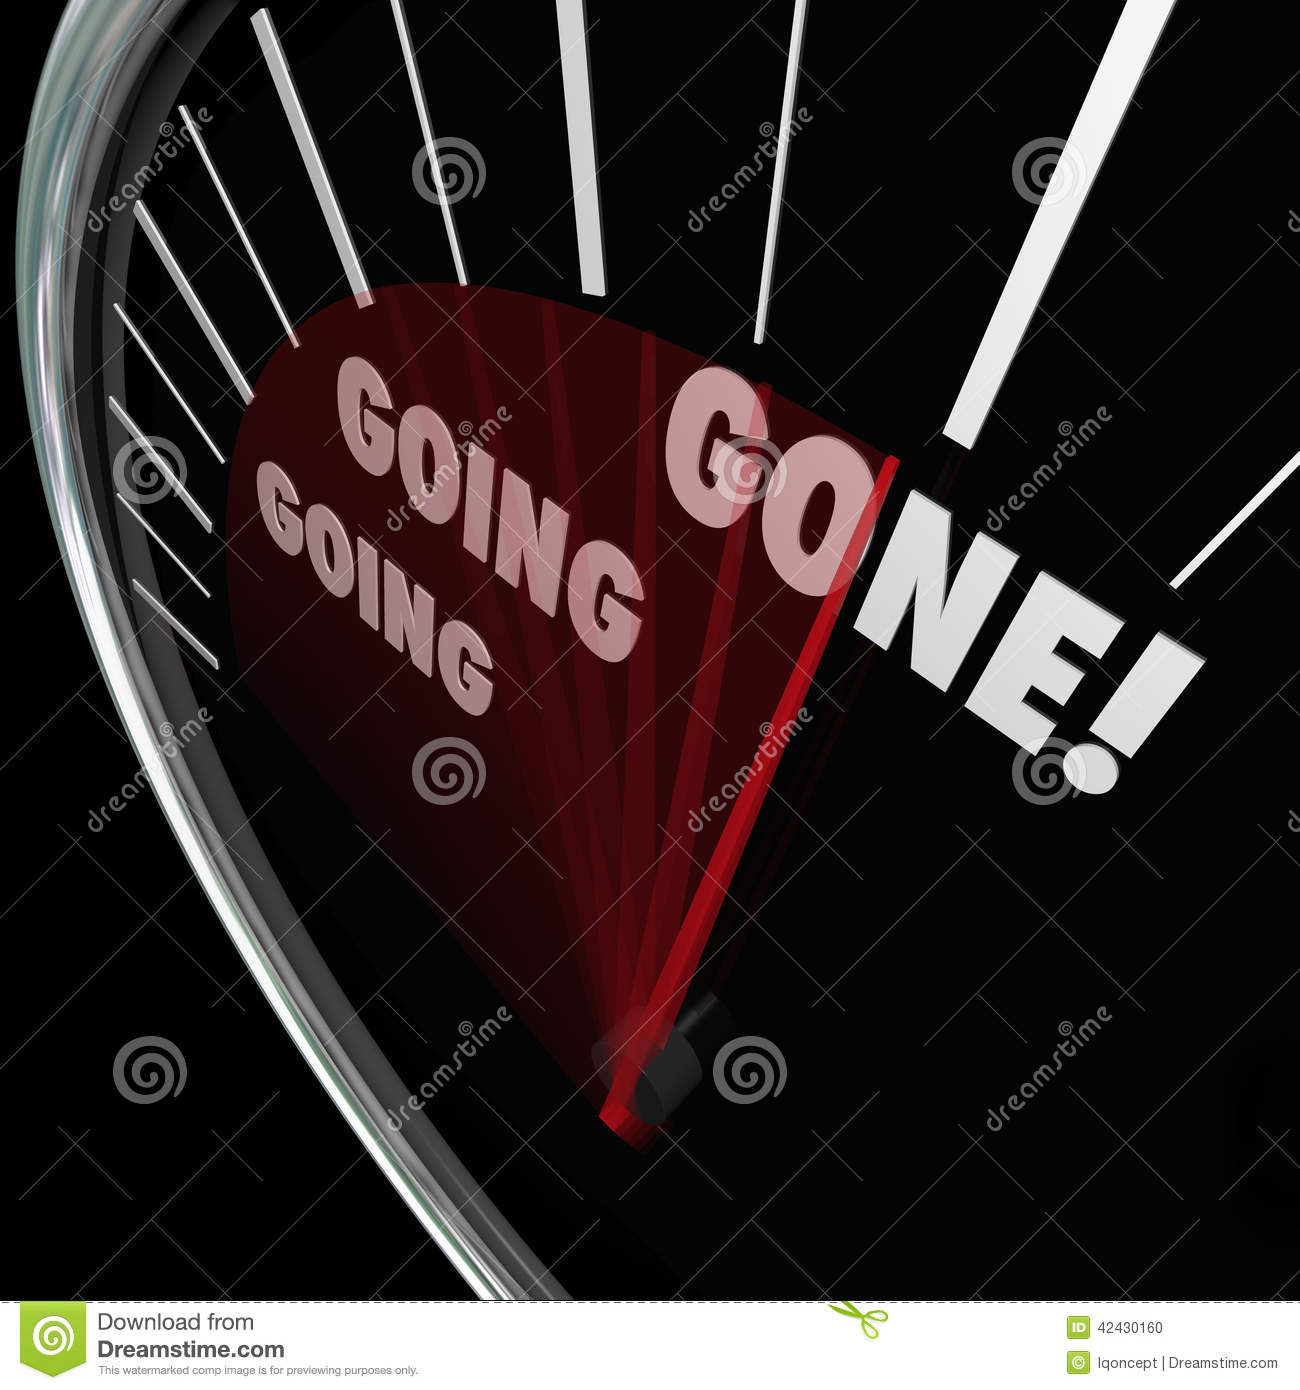 Going Going Gone Speedometer Fast Quick Action Bidding Auction